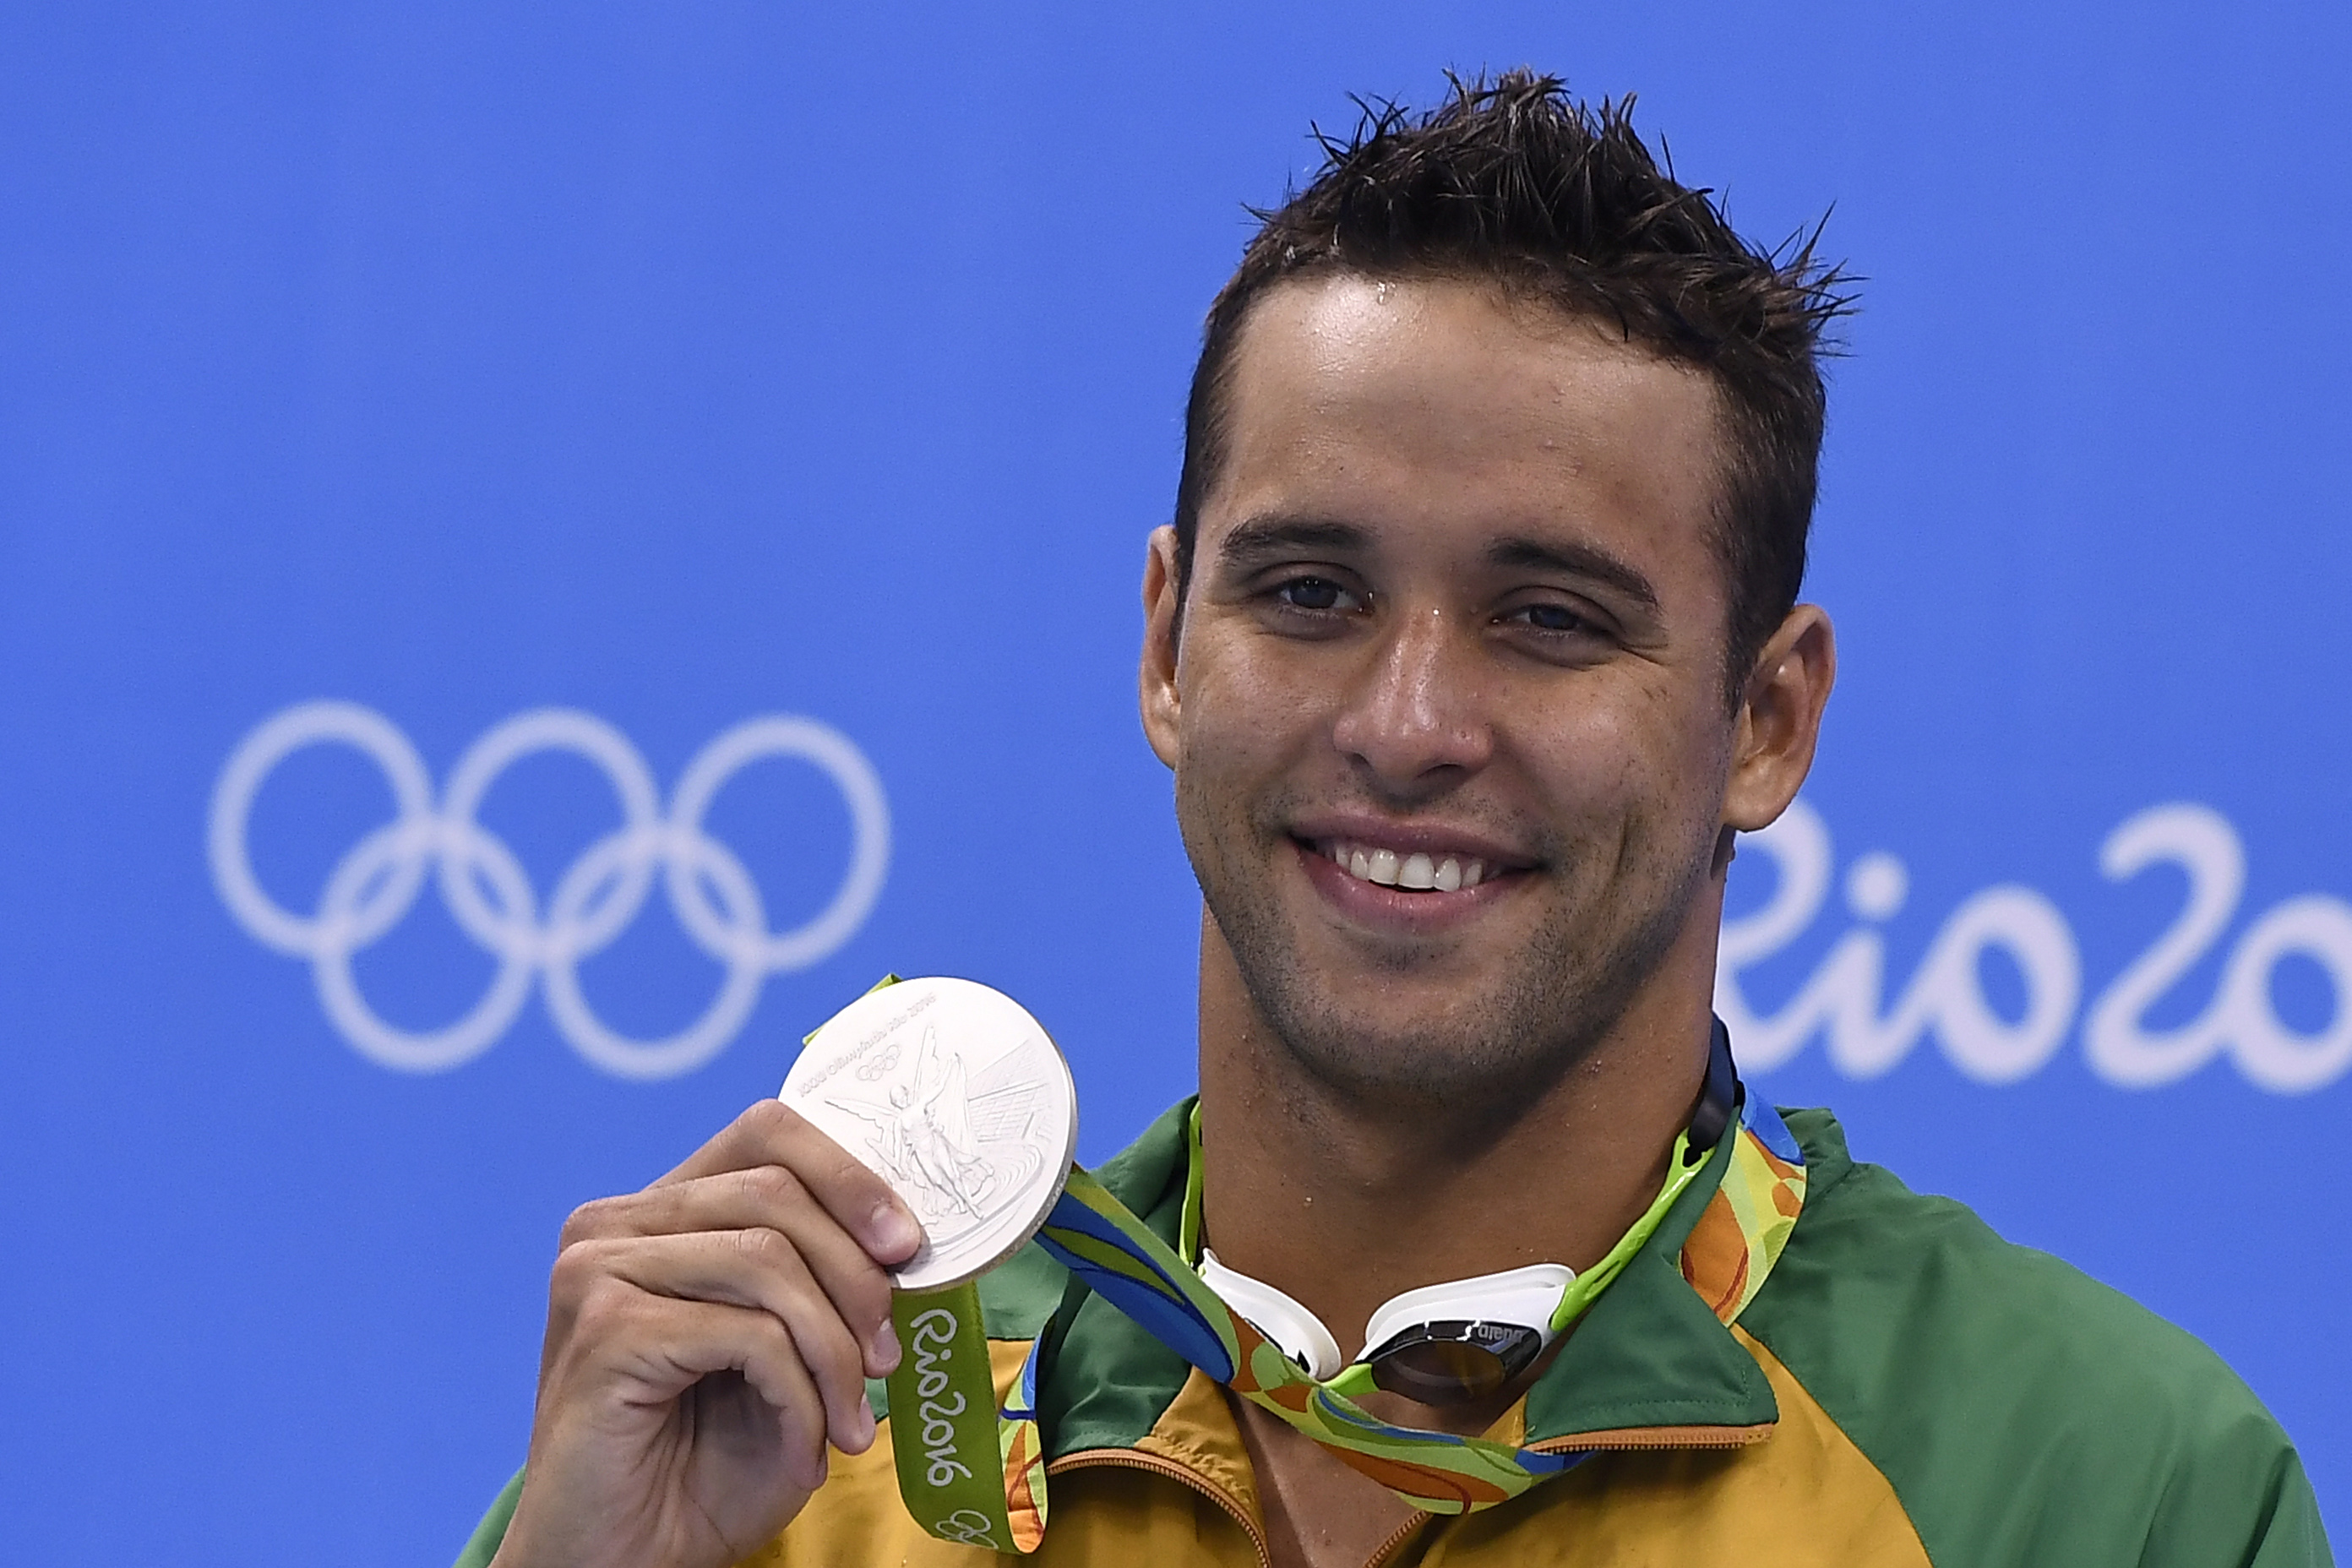 Is Chad Le Clos Single The Olympic Swimmer Is Focused On His Career